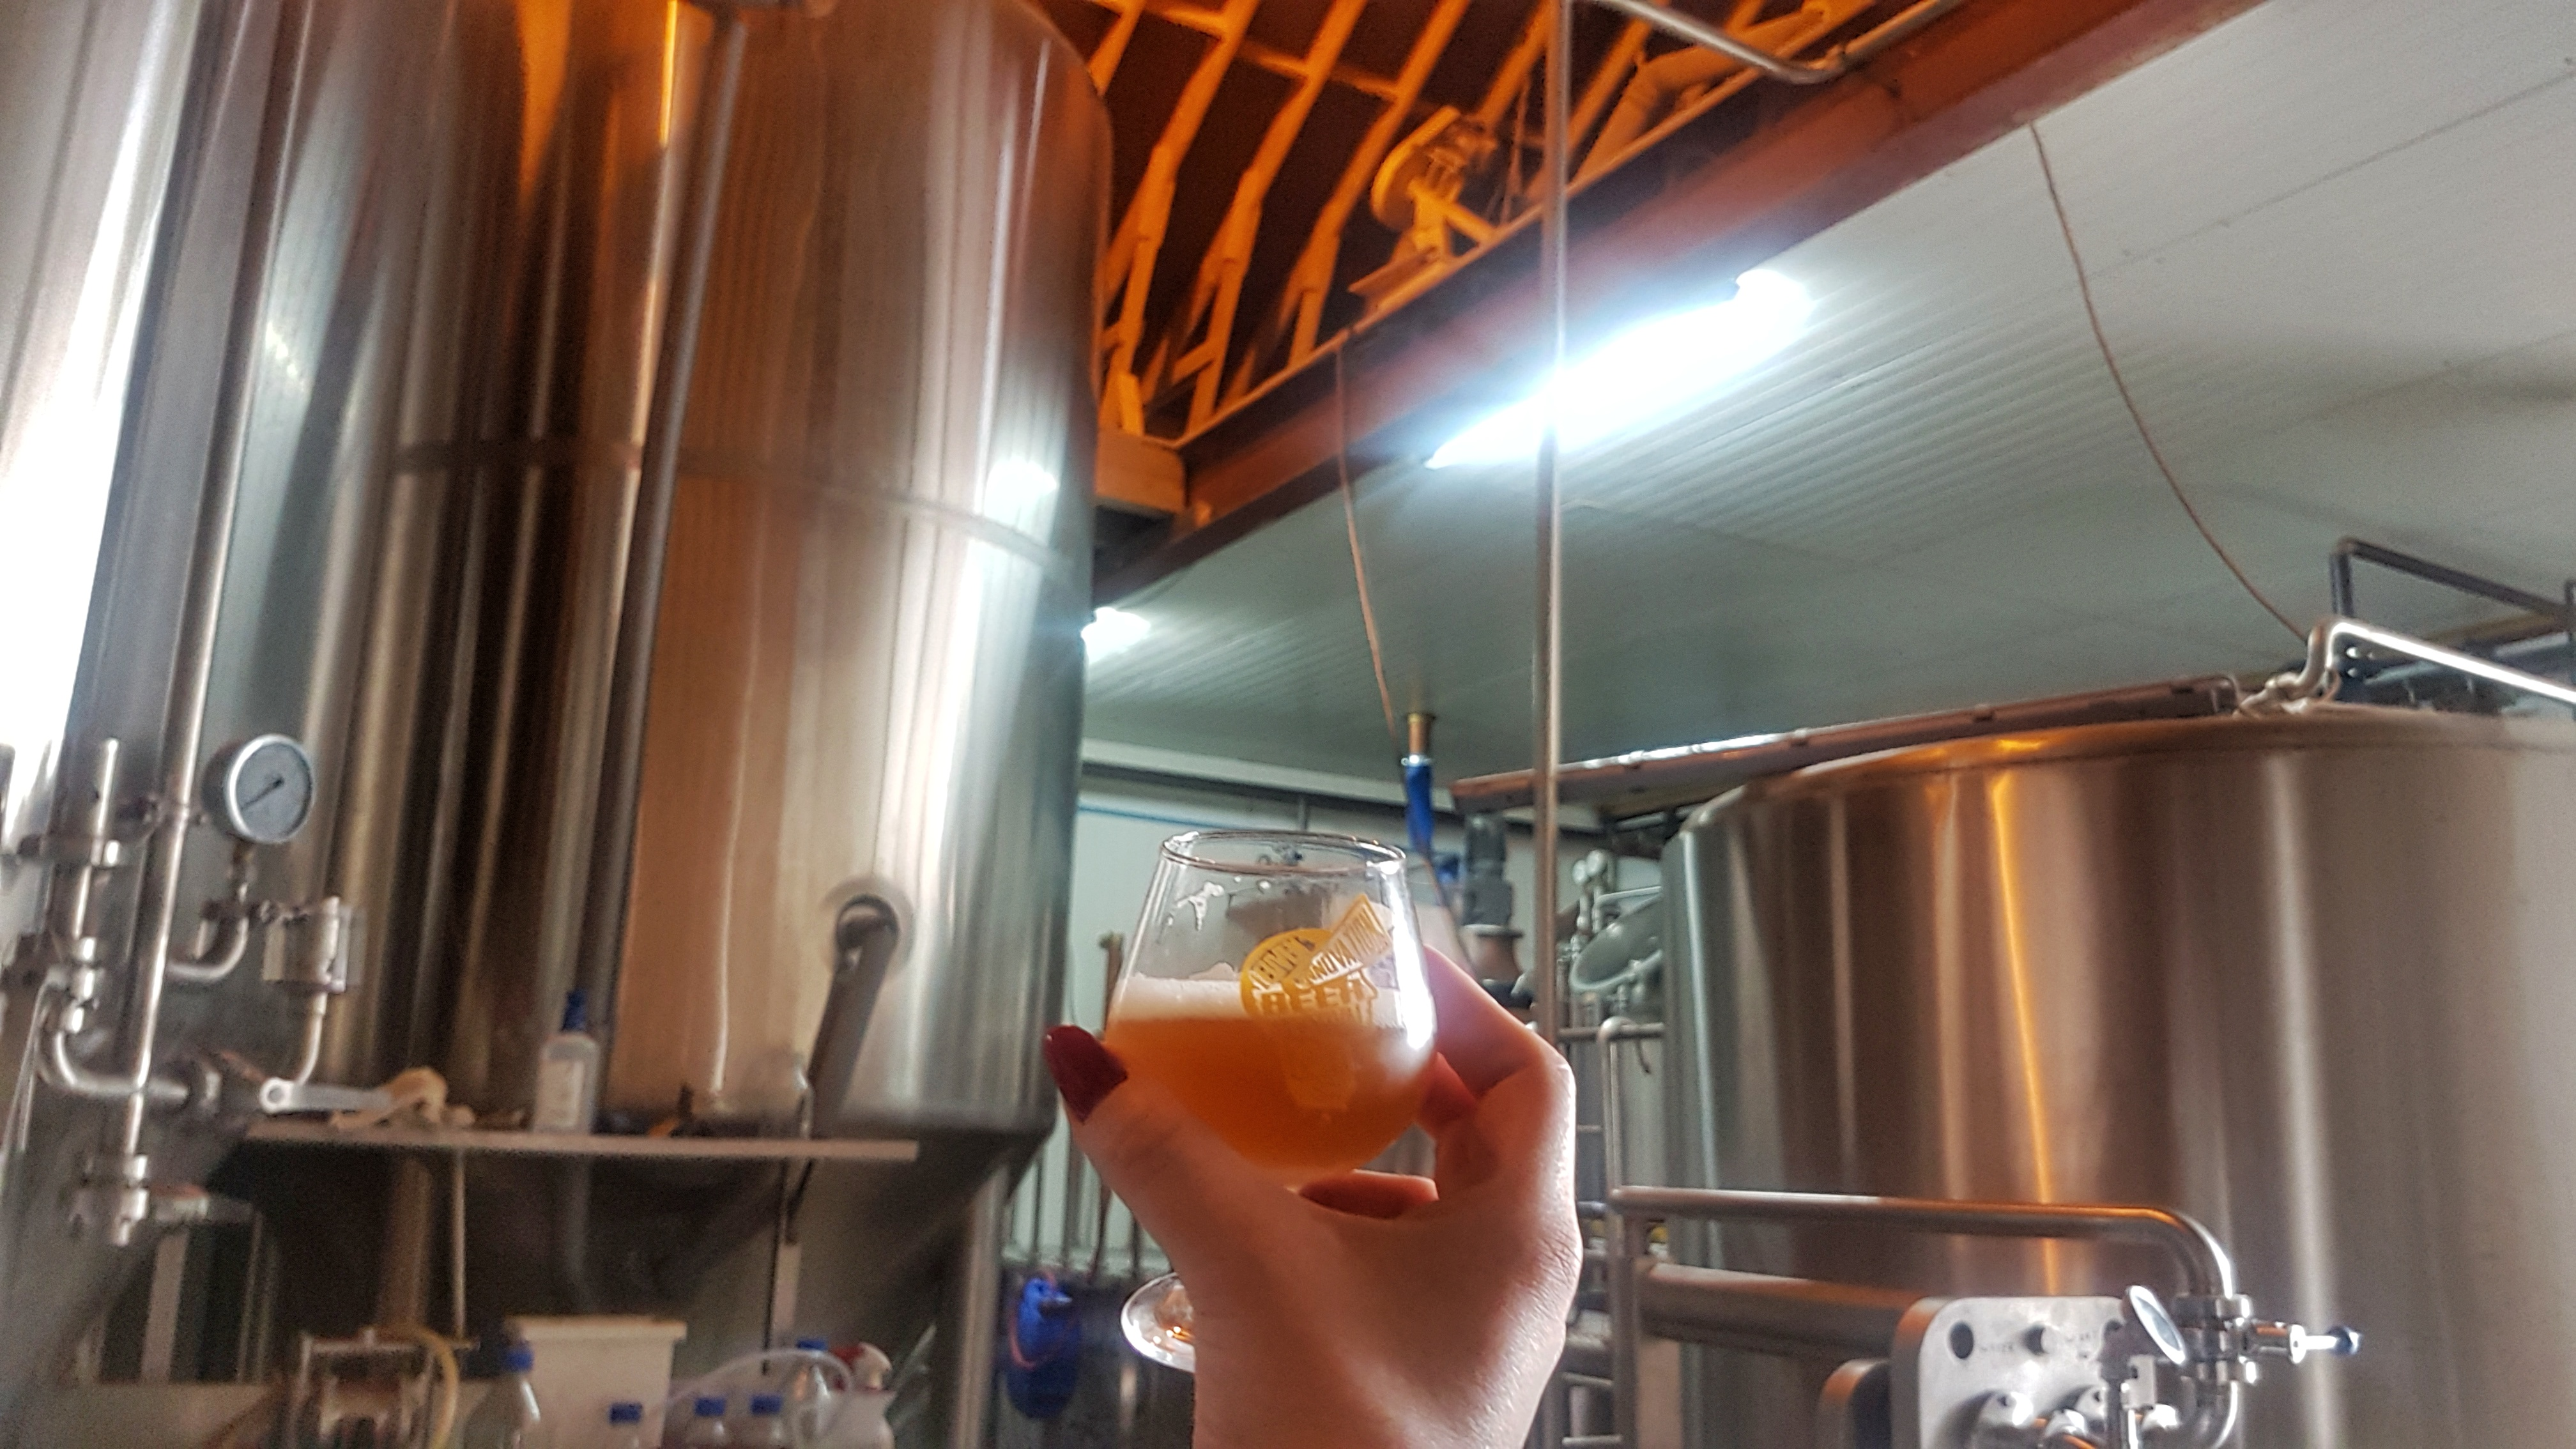 Hof Beer brewery tour Leuven, read more about what you can do in Leuven in 48 hours at www.whatsupcourtney.com #Leuven #travel #travelguide